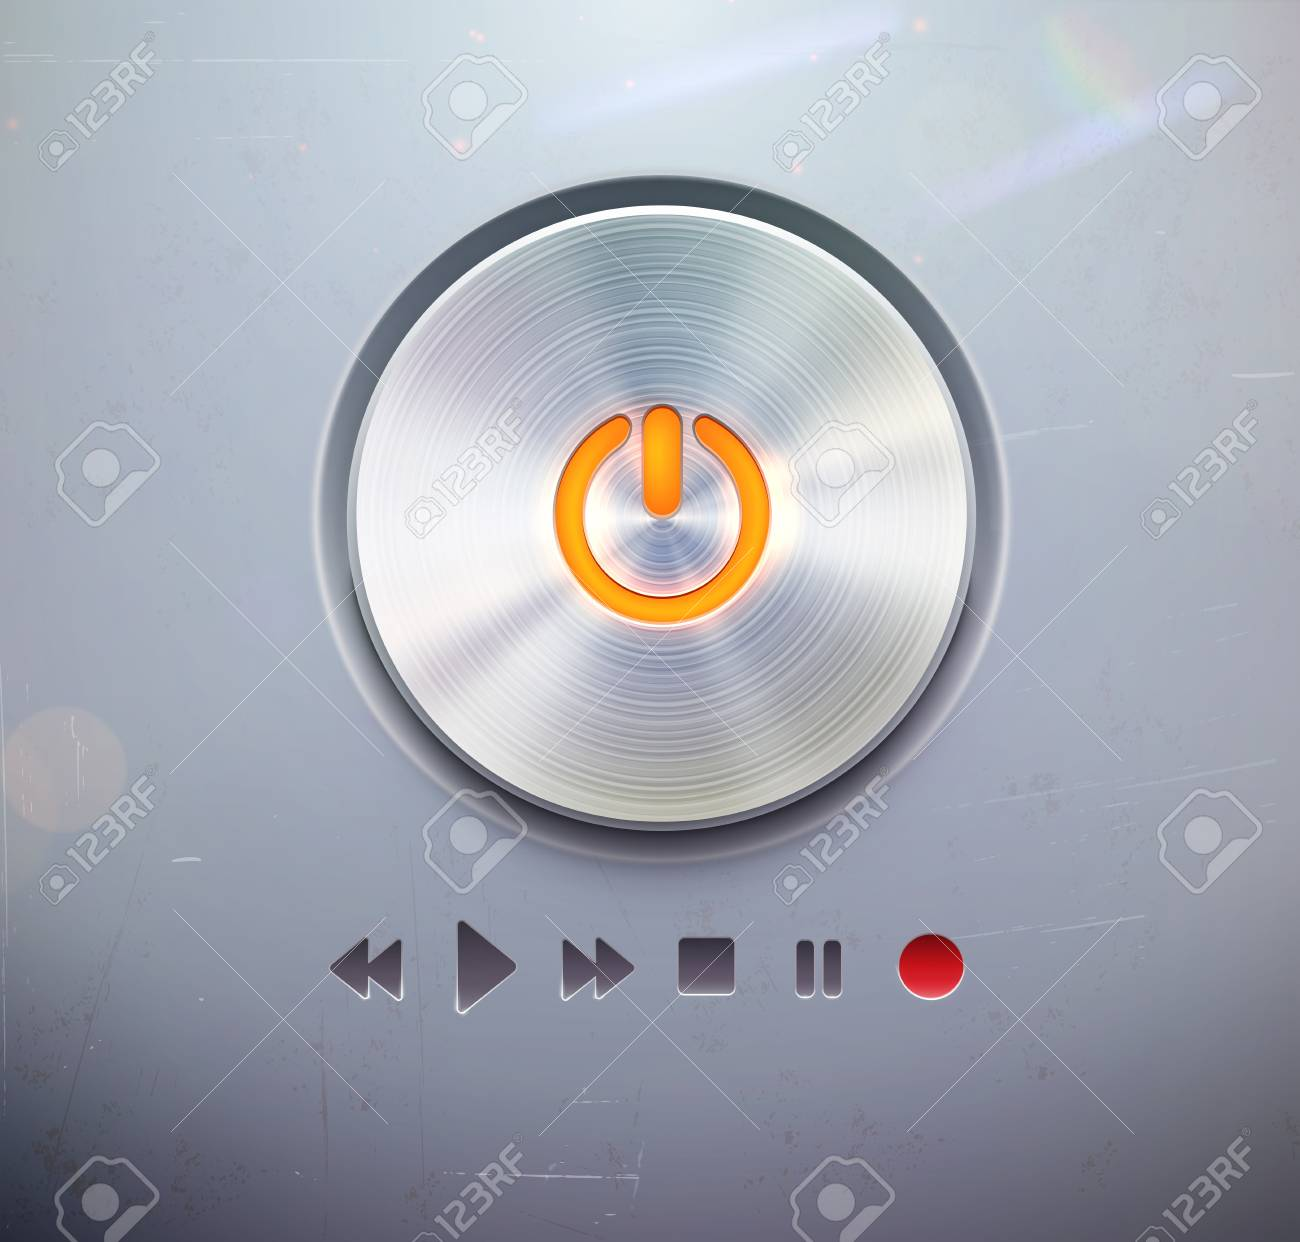 illustration of the detailed round power button for media player &acirc, buttons in metallic style. Good for your websites, blogs or applications. Stock Vector - 16777702